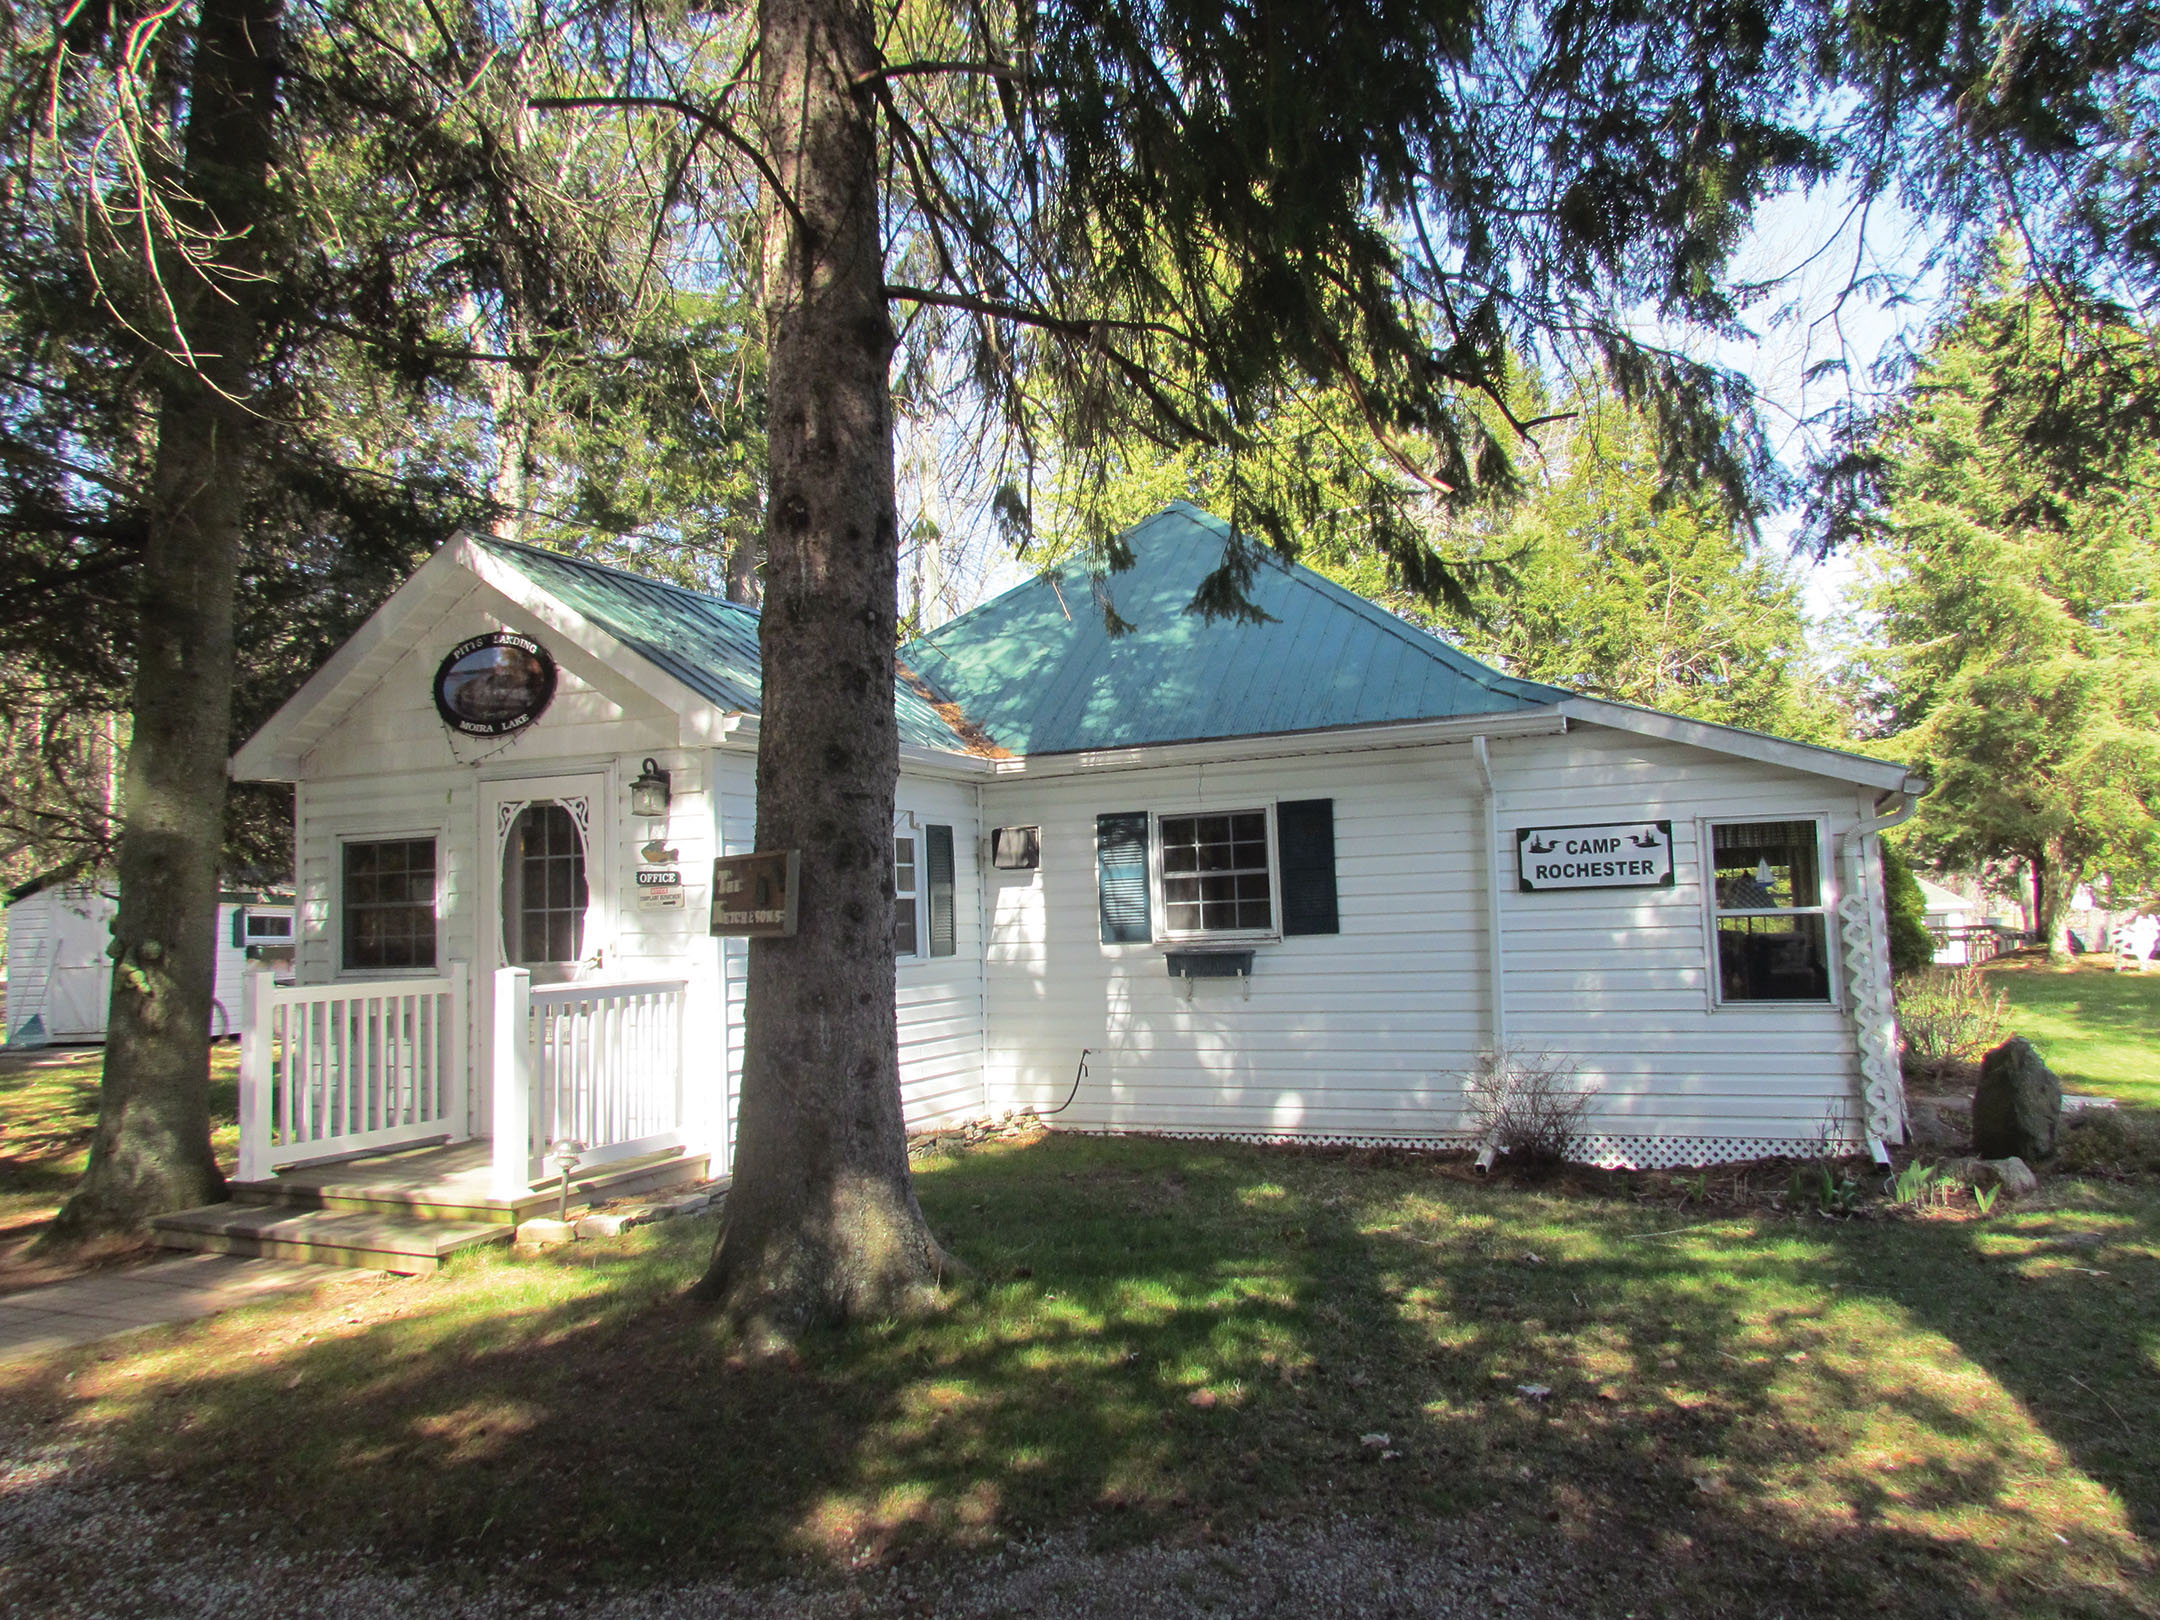 Each of the Pitts' Landing cottages had a name and a story. 'Camp Rochester' was one of the original eight cabins built on the shores of Moira Lake in 1939.